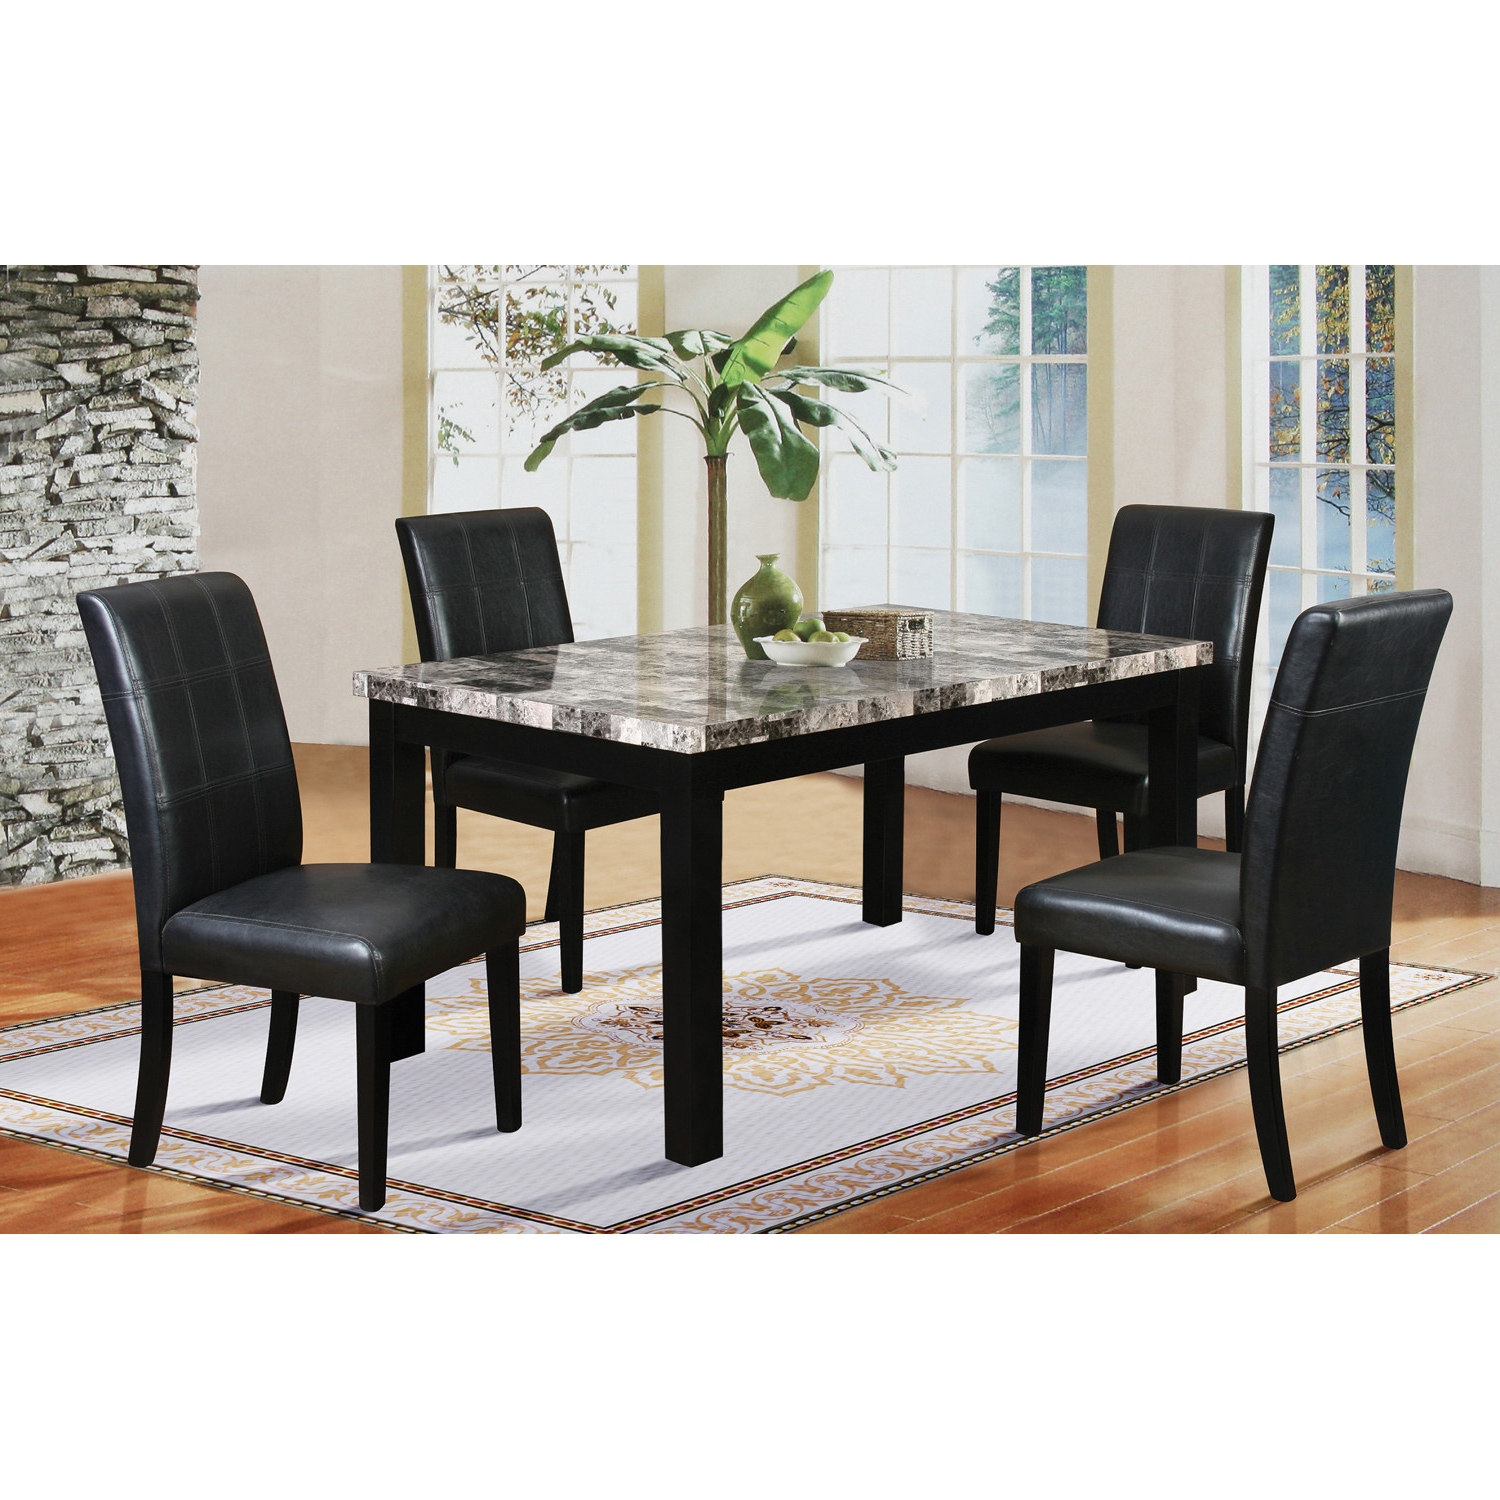 Most Recent Cargo 5 Piece Dining Sets With Regard To Latitude Run Cahill 5 Piece Dining Set Reviews (View 19 of 25)